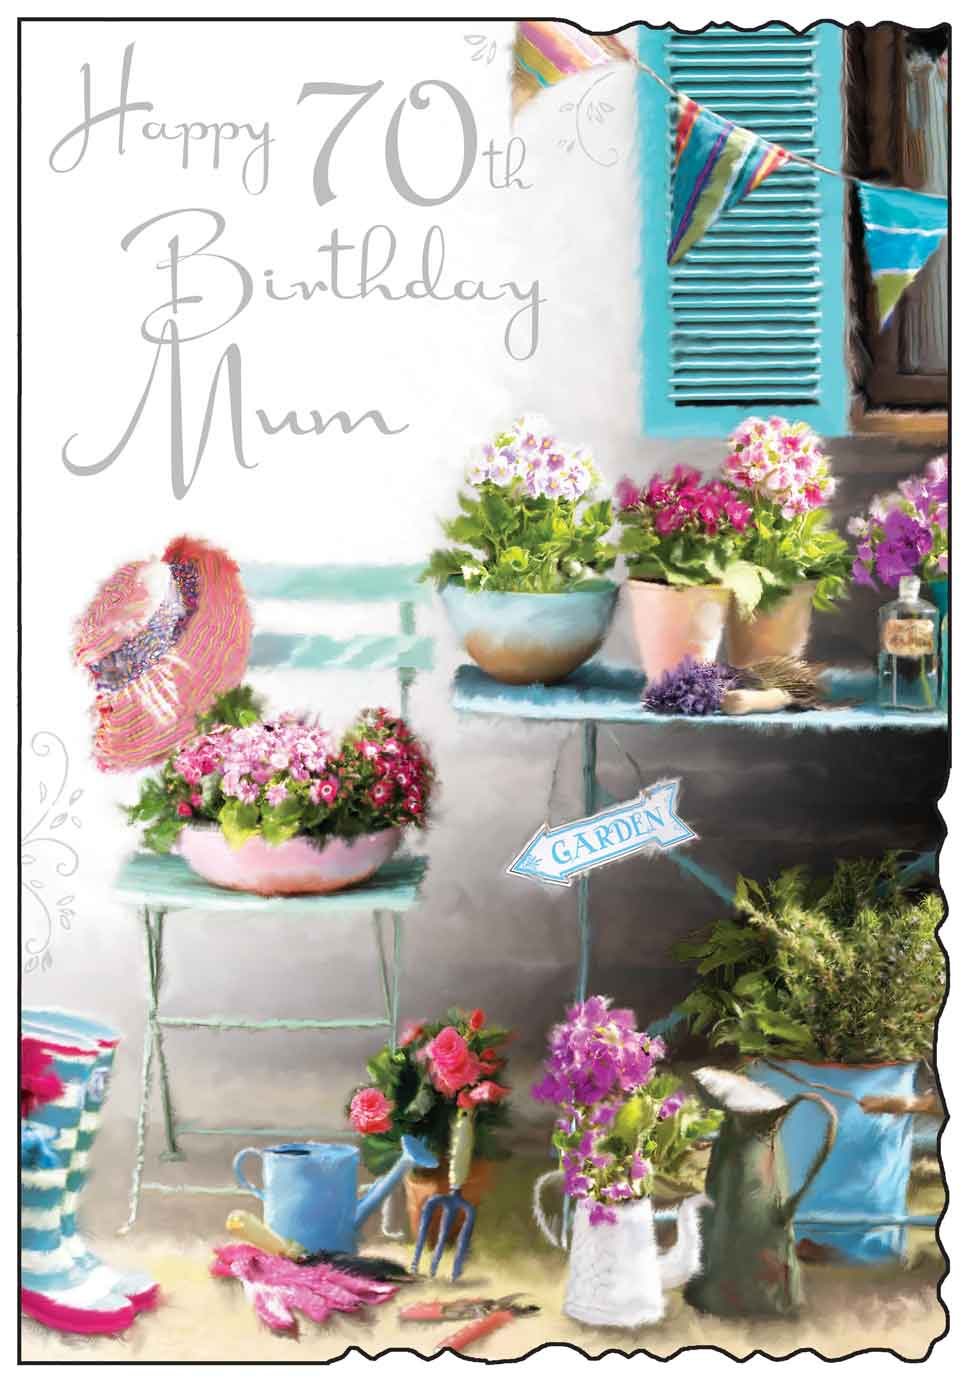 Happy 70th birthday mum card